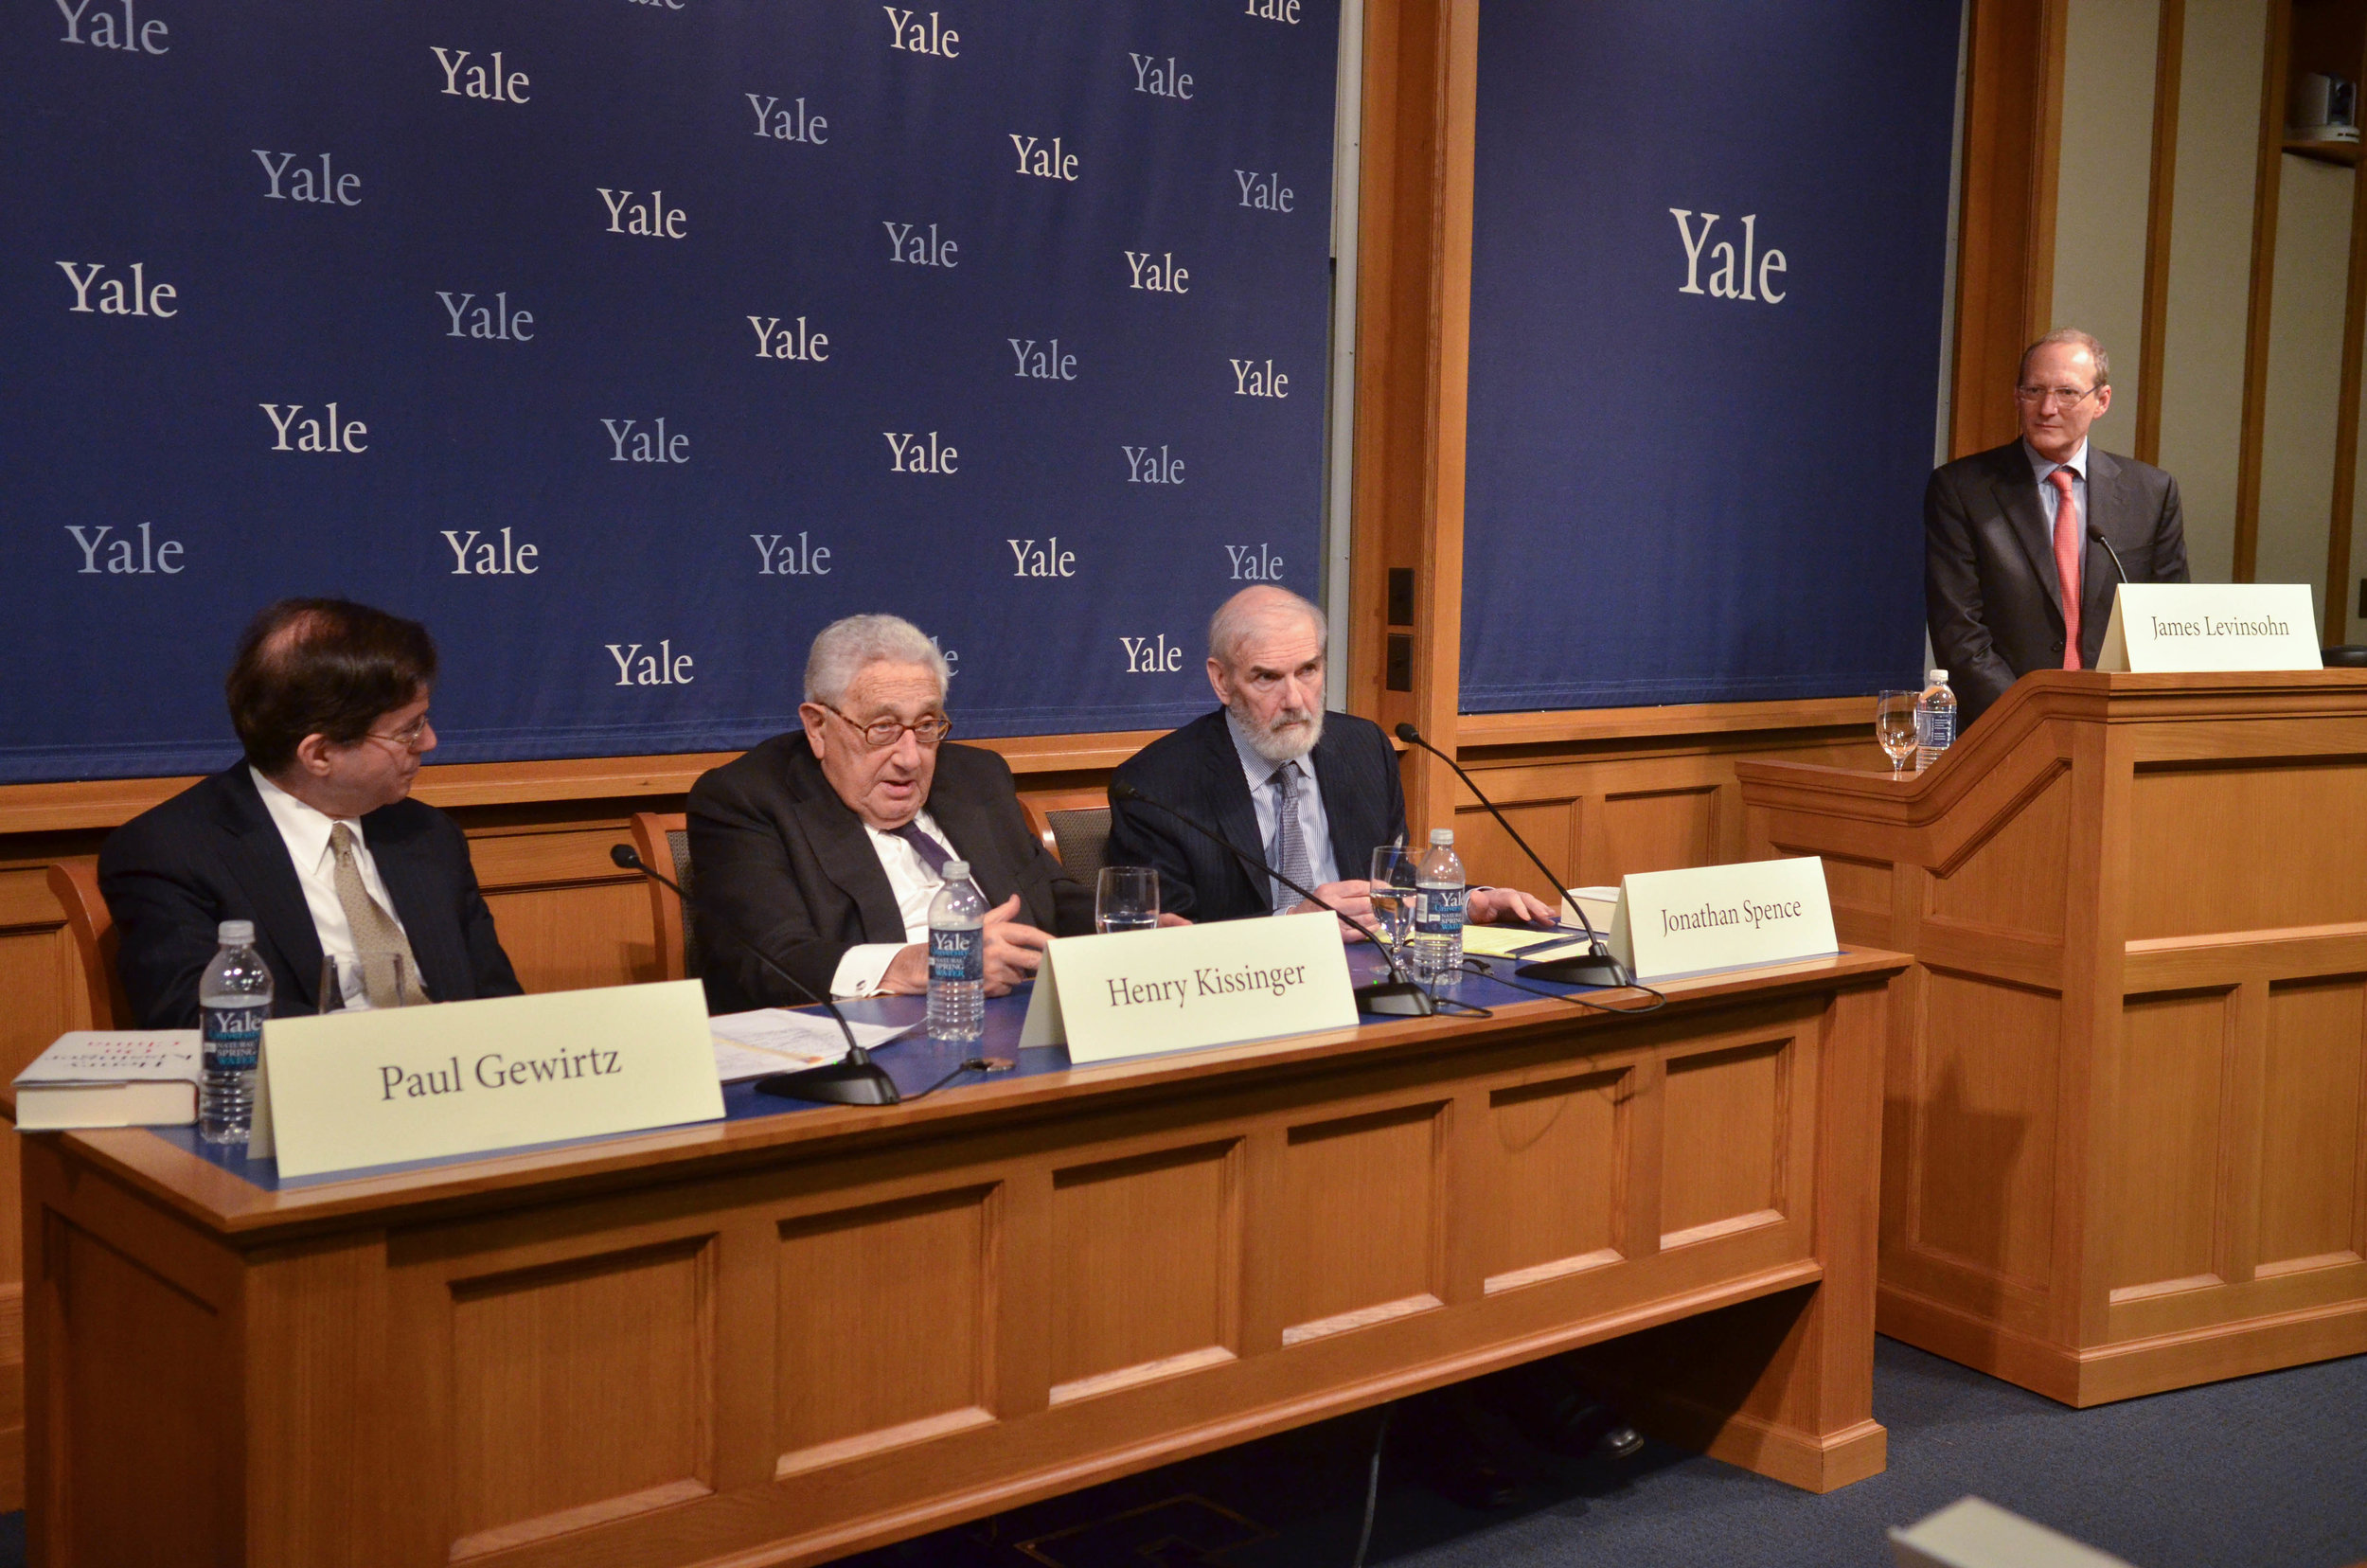 Paul Gewirtz, Henry Kissinger, and Jonathan Spence